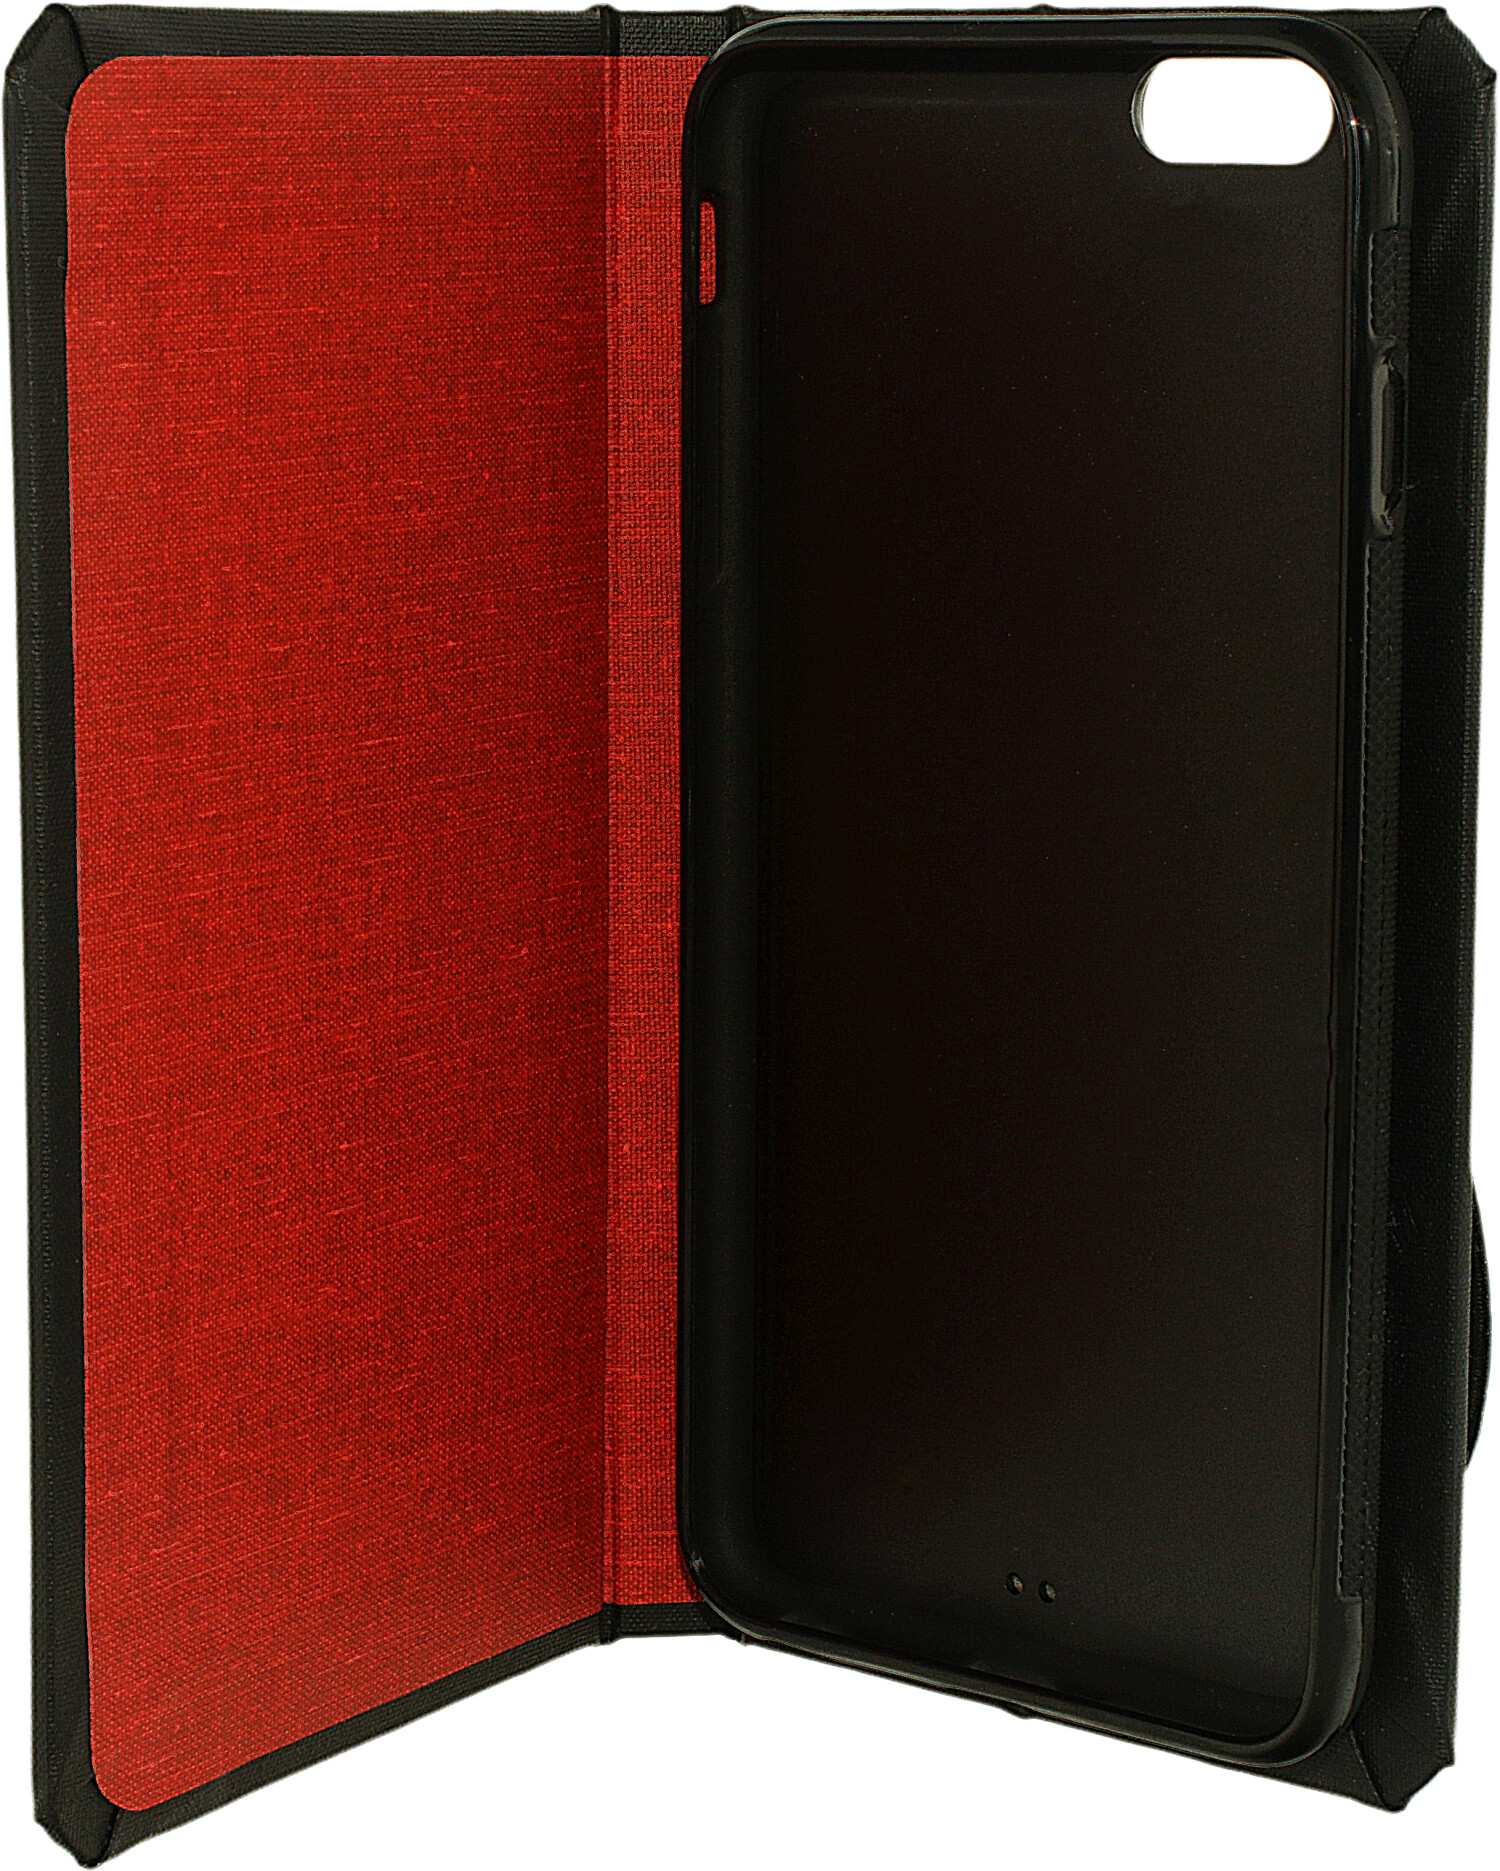 Portenzo Iphone 6P Cell Phone Case AT16001-6P-100